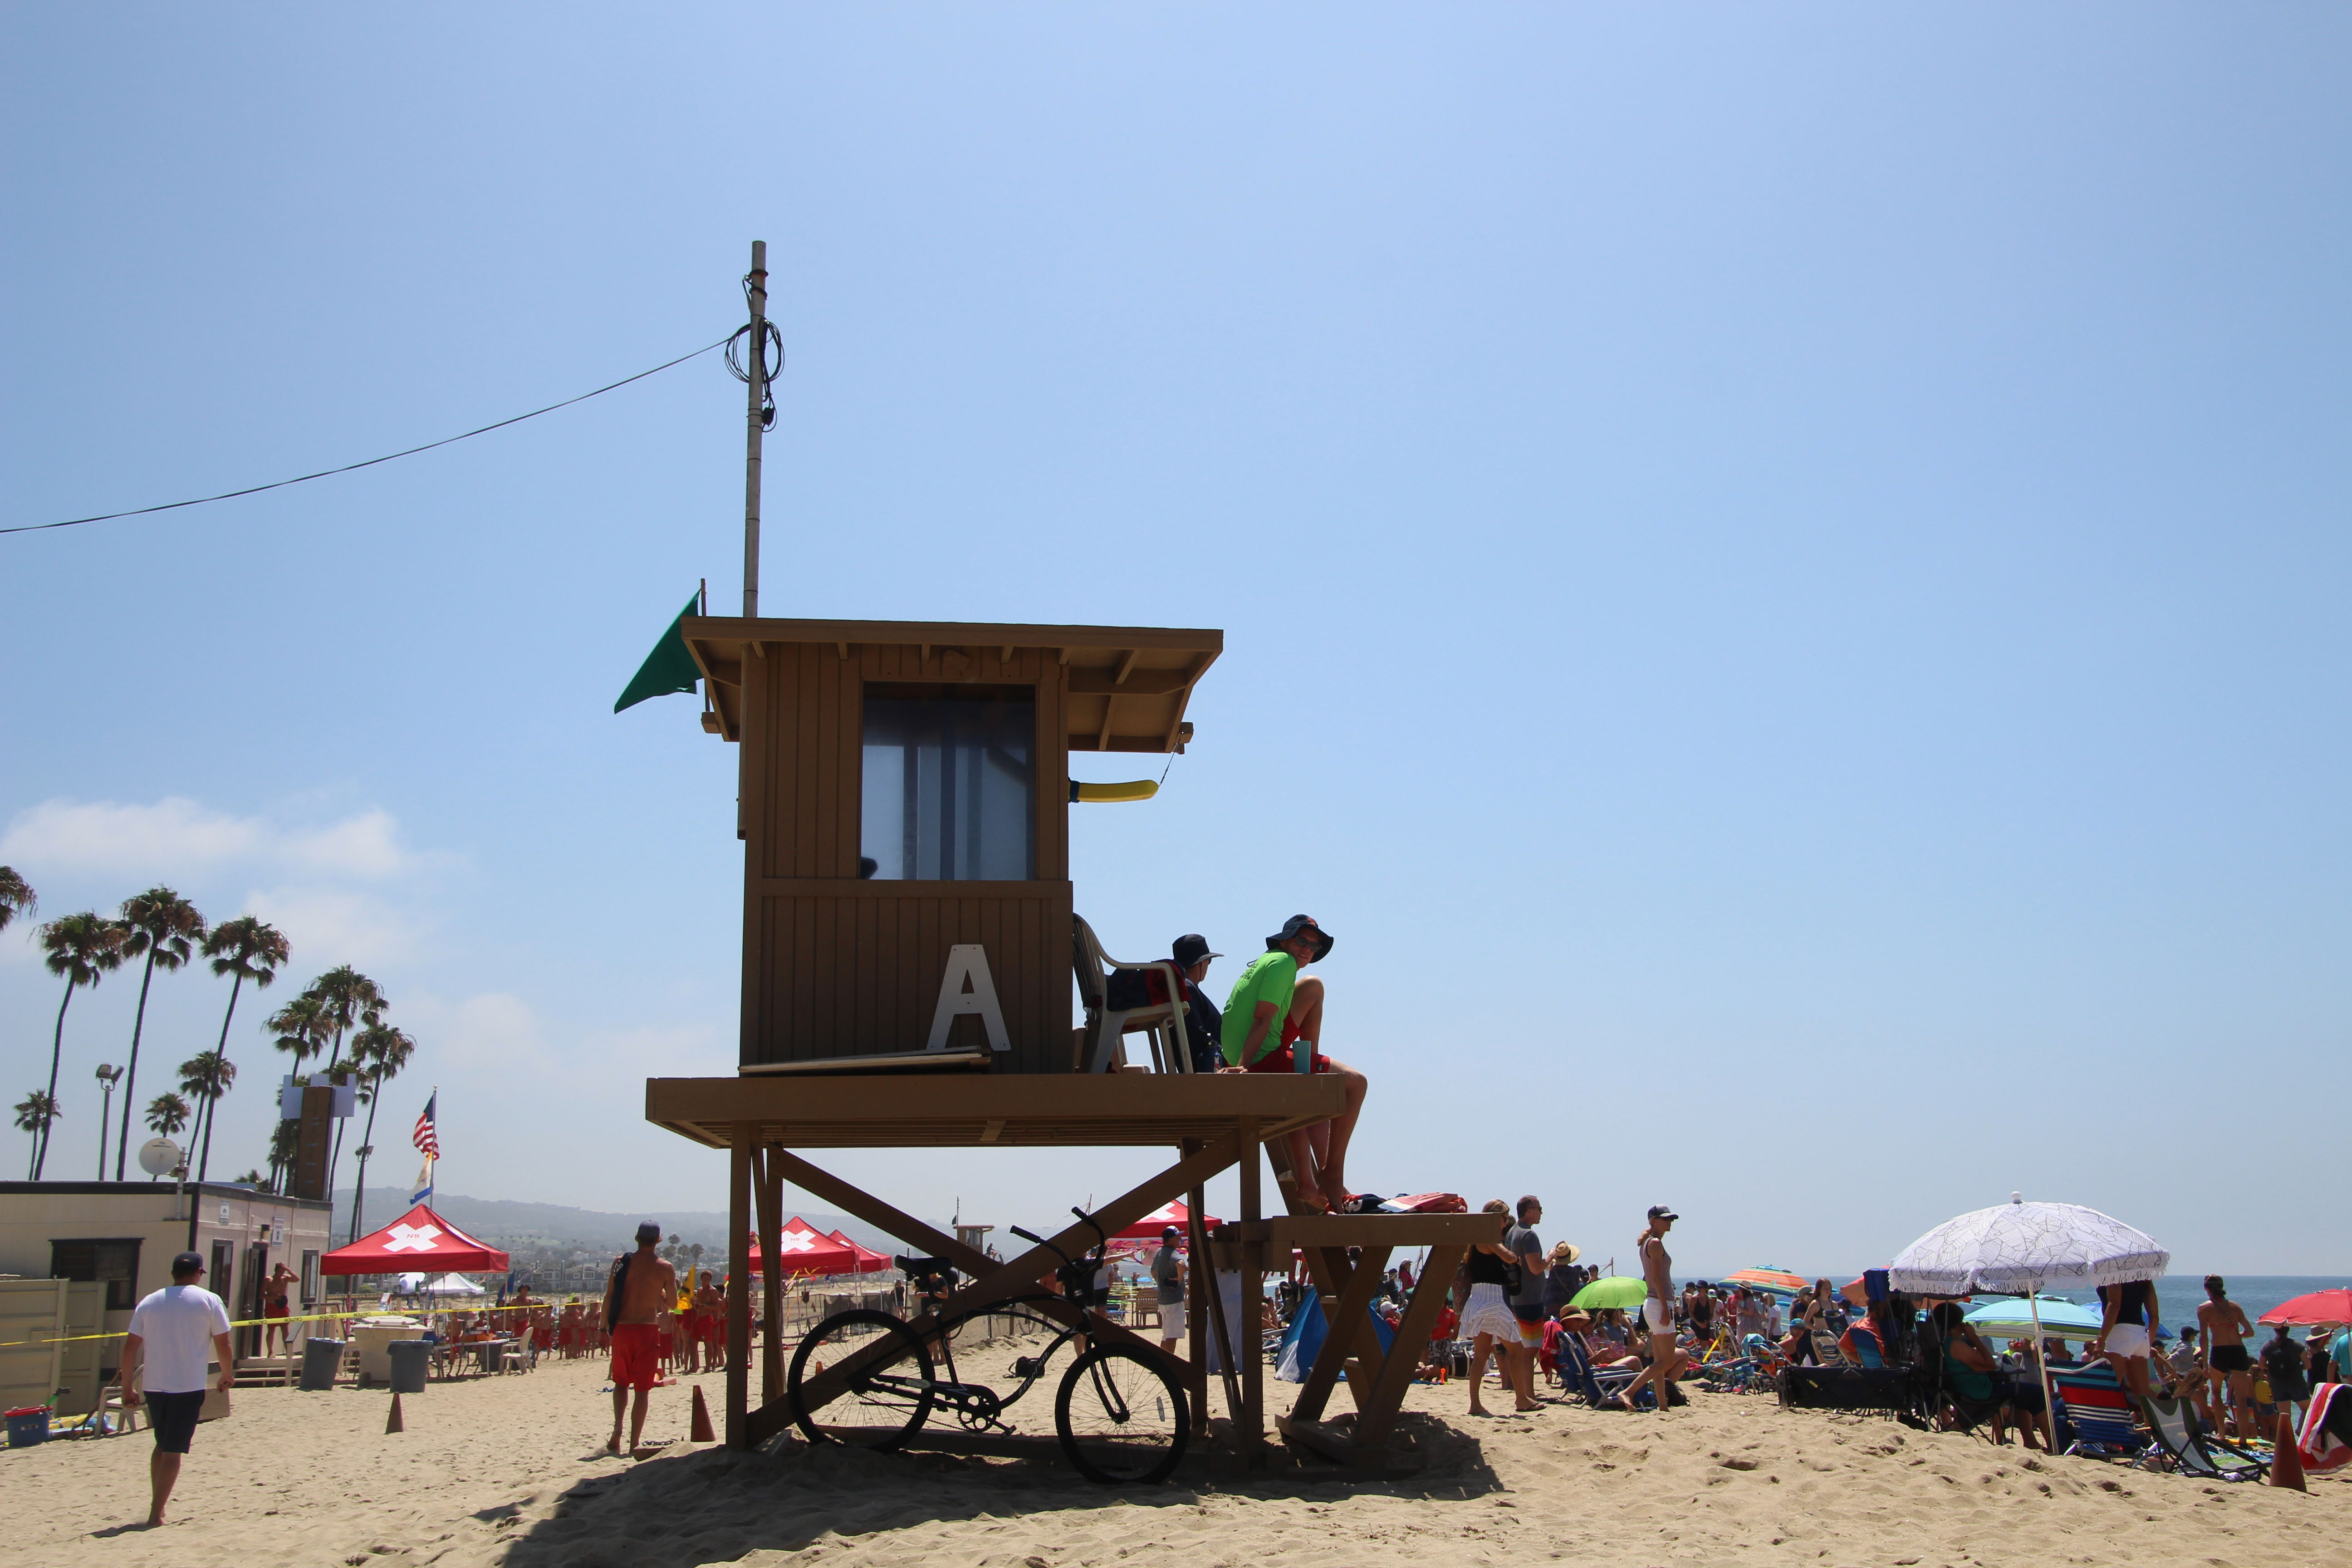 Lifeguard Tower A 9.10